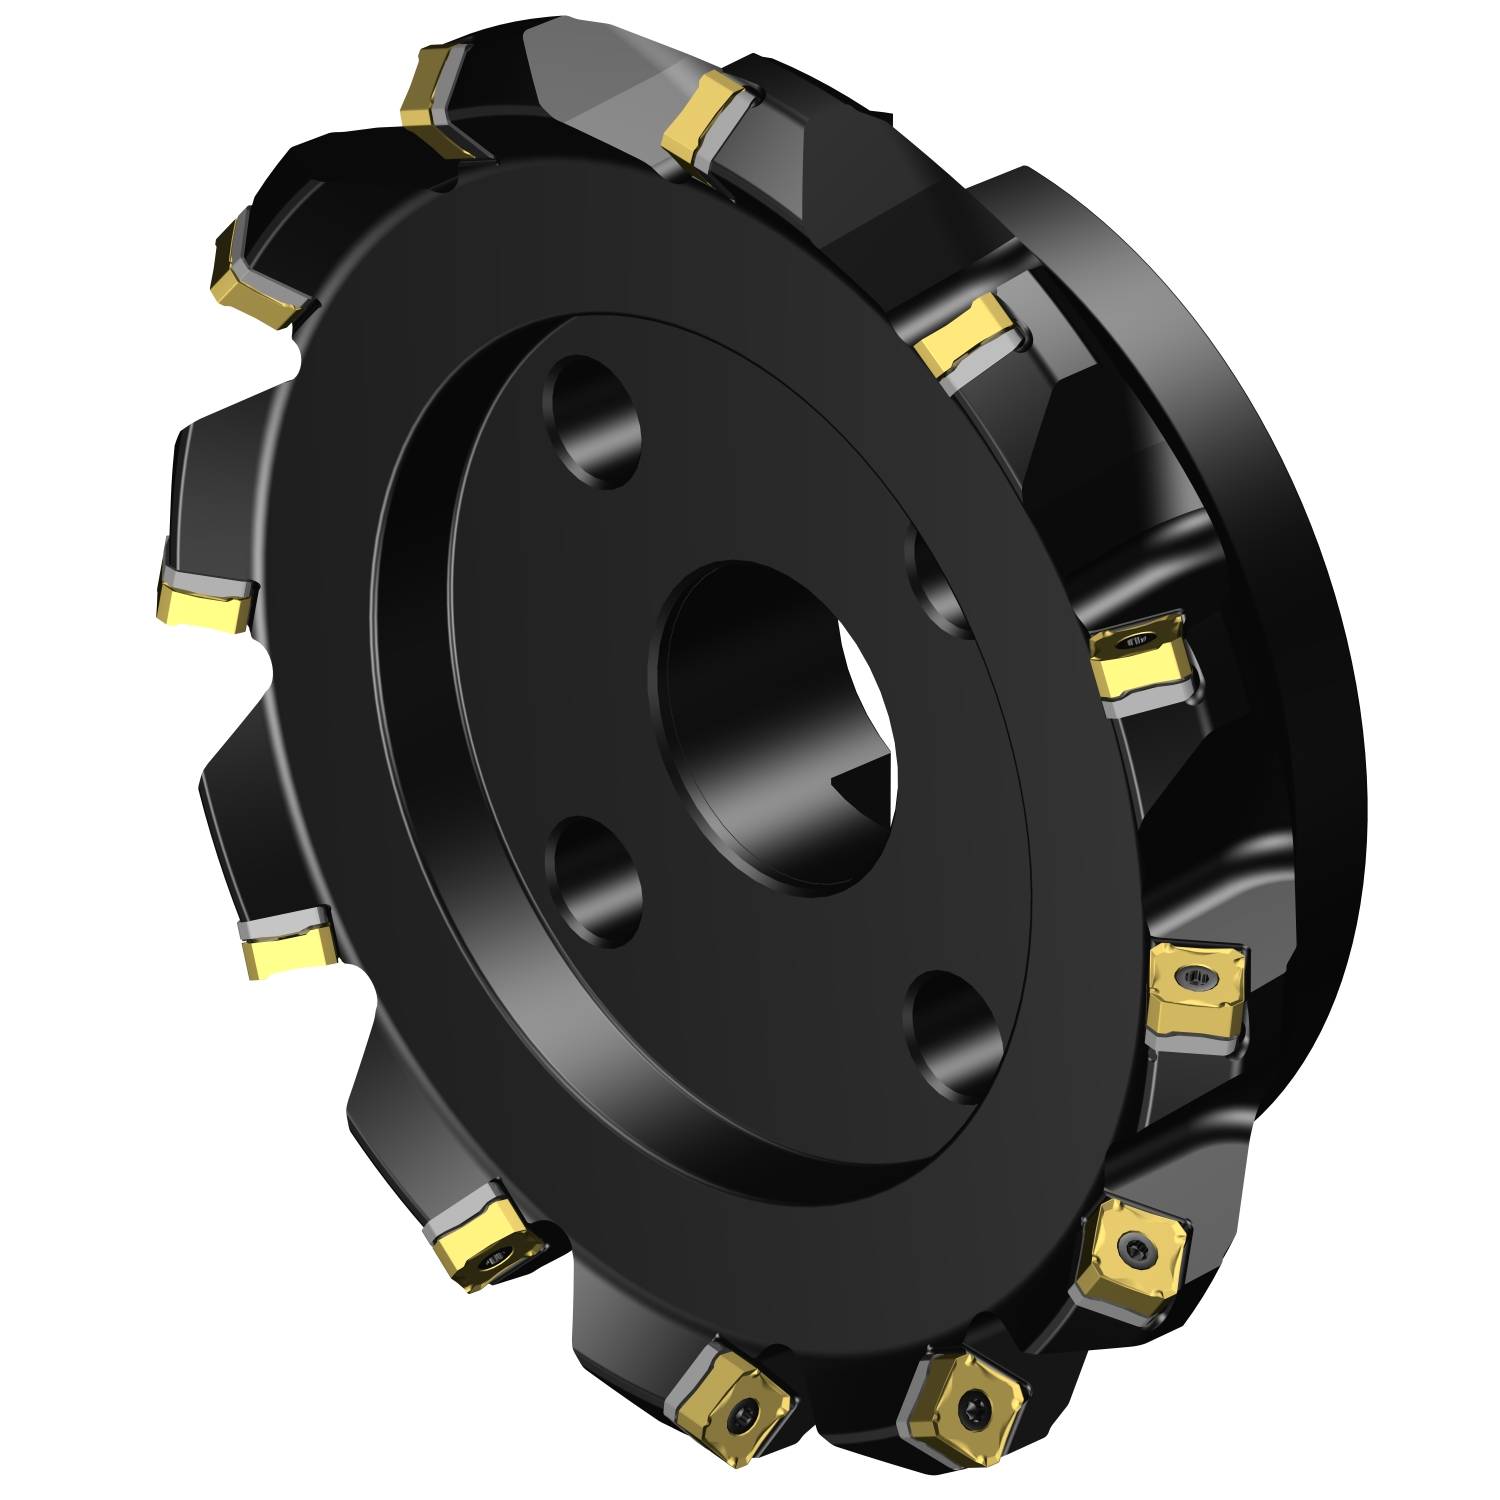 A345-200J47-13M - Holders, Adapters & Heads